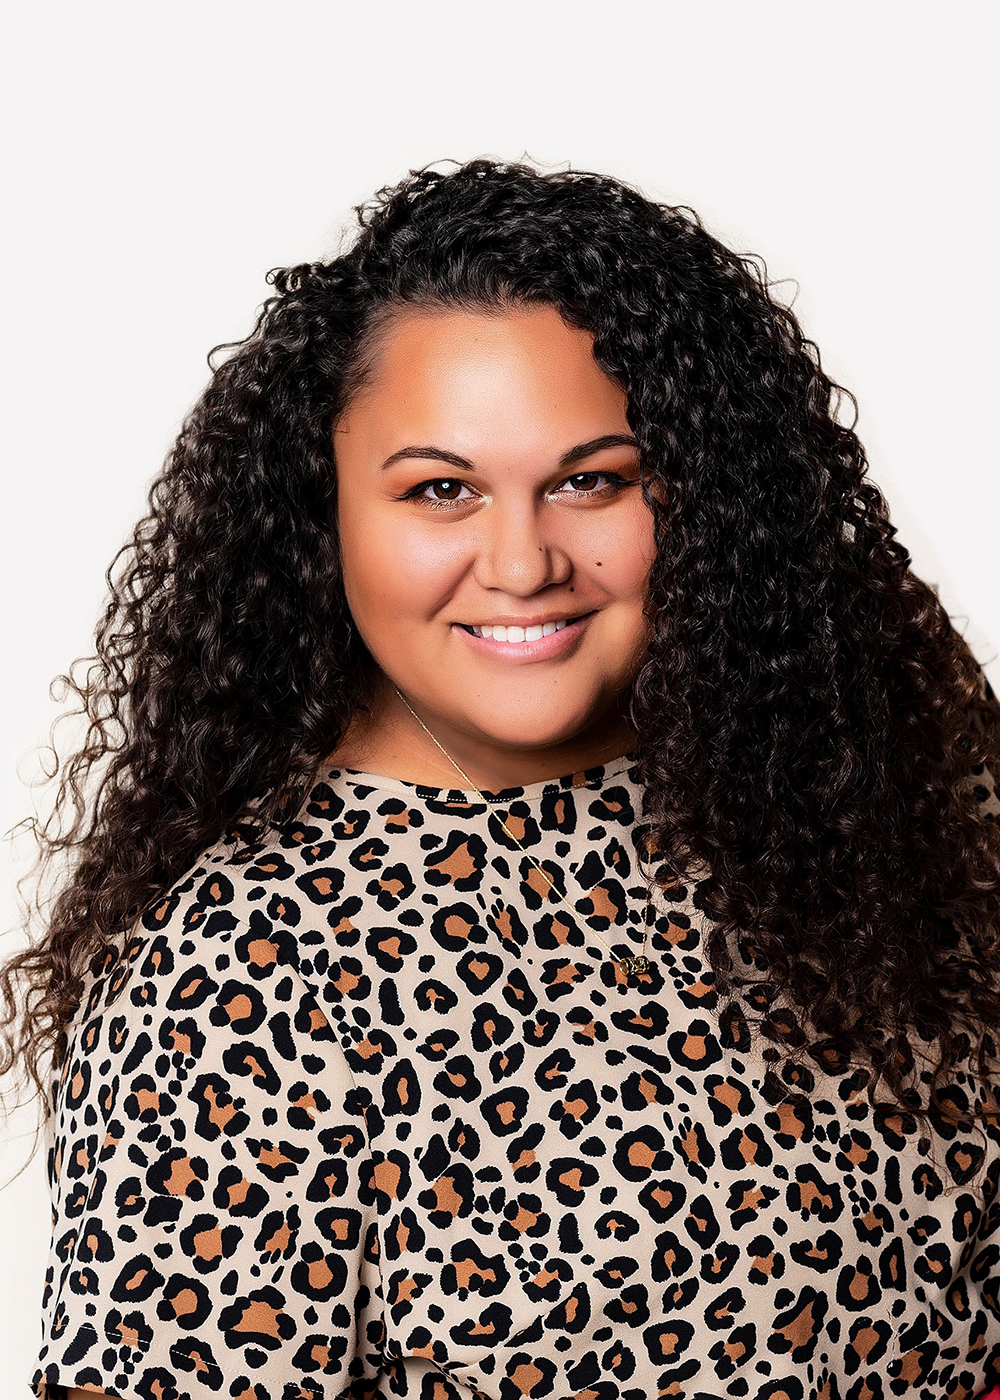 Smiling person with medium-colored skin and curly hair poses in a leopard print top